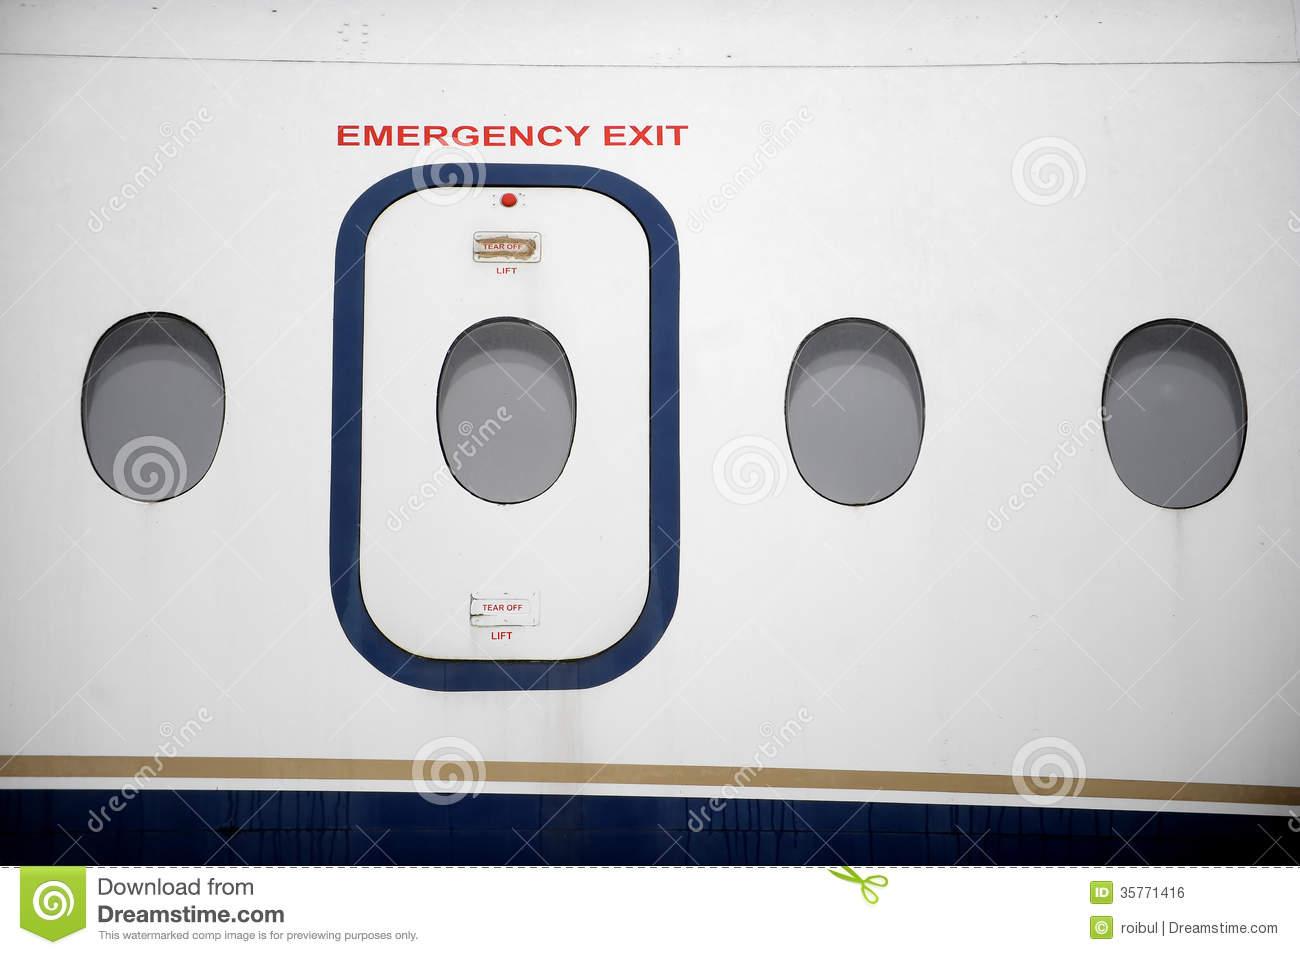 aircraft airplane door ... & Airplane Emergency Exit Royalty Free Stock Image - Image: 35771416 Pezcame.Com